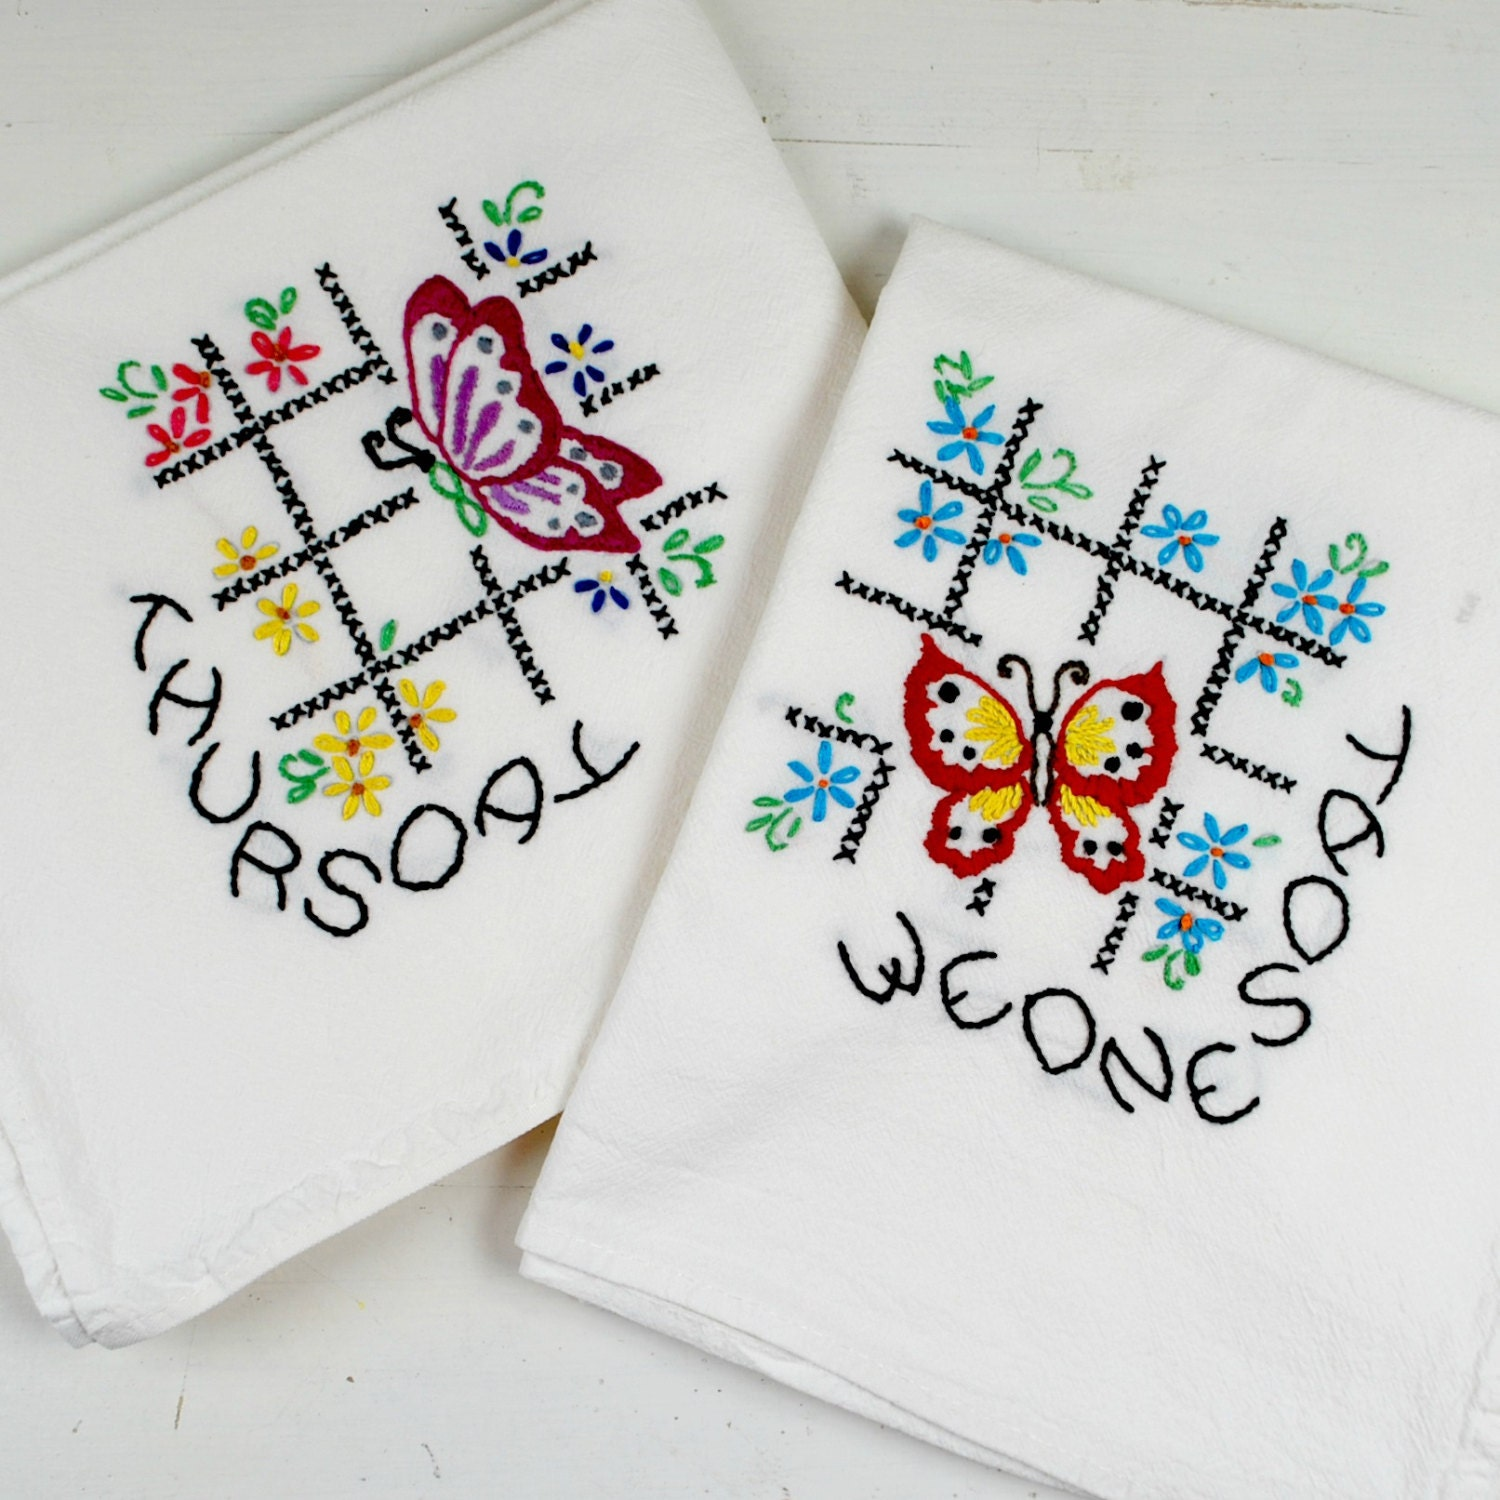 Days Of The Week Dish Towel Embroidered Towels Hand